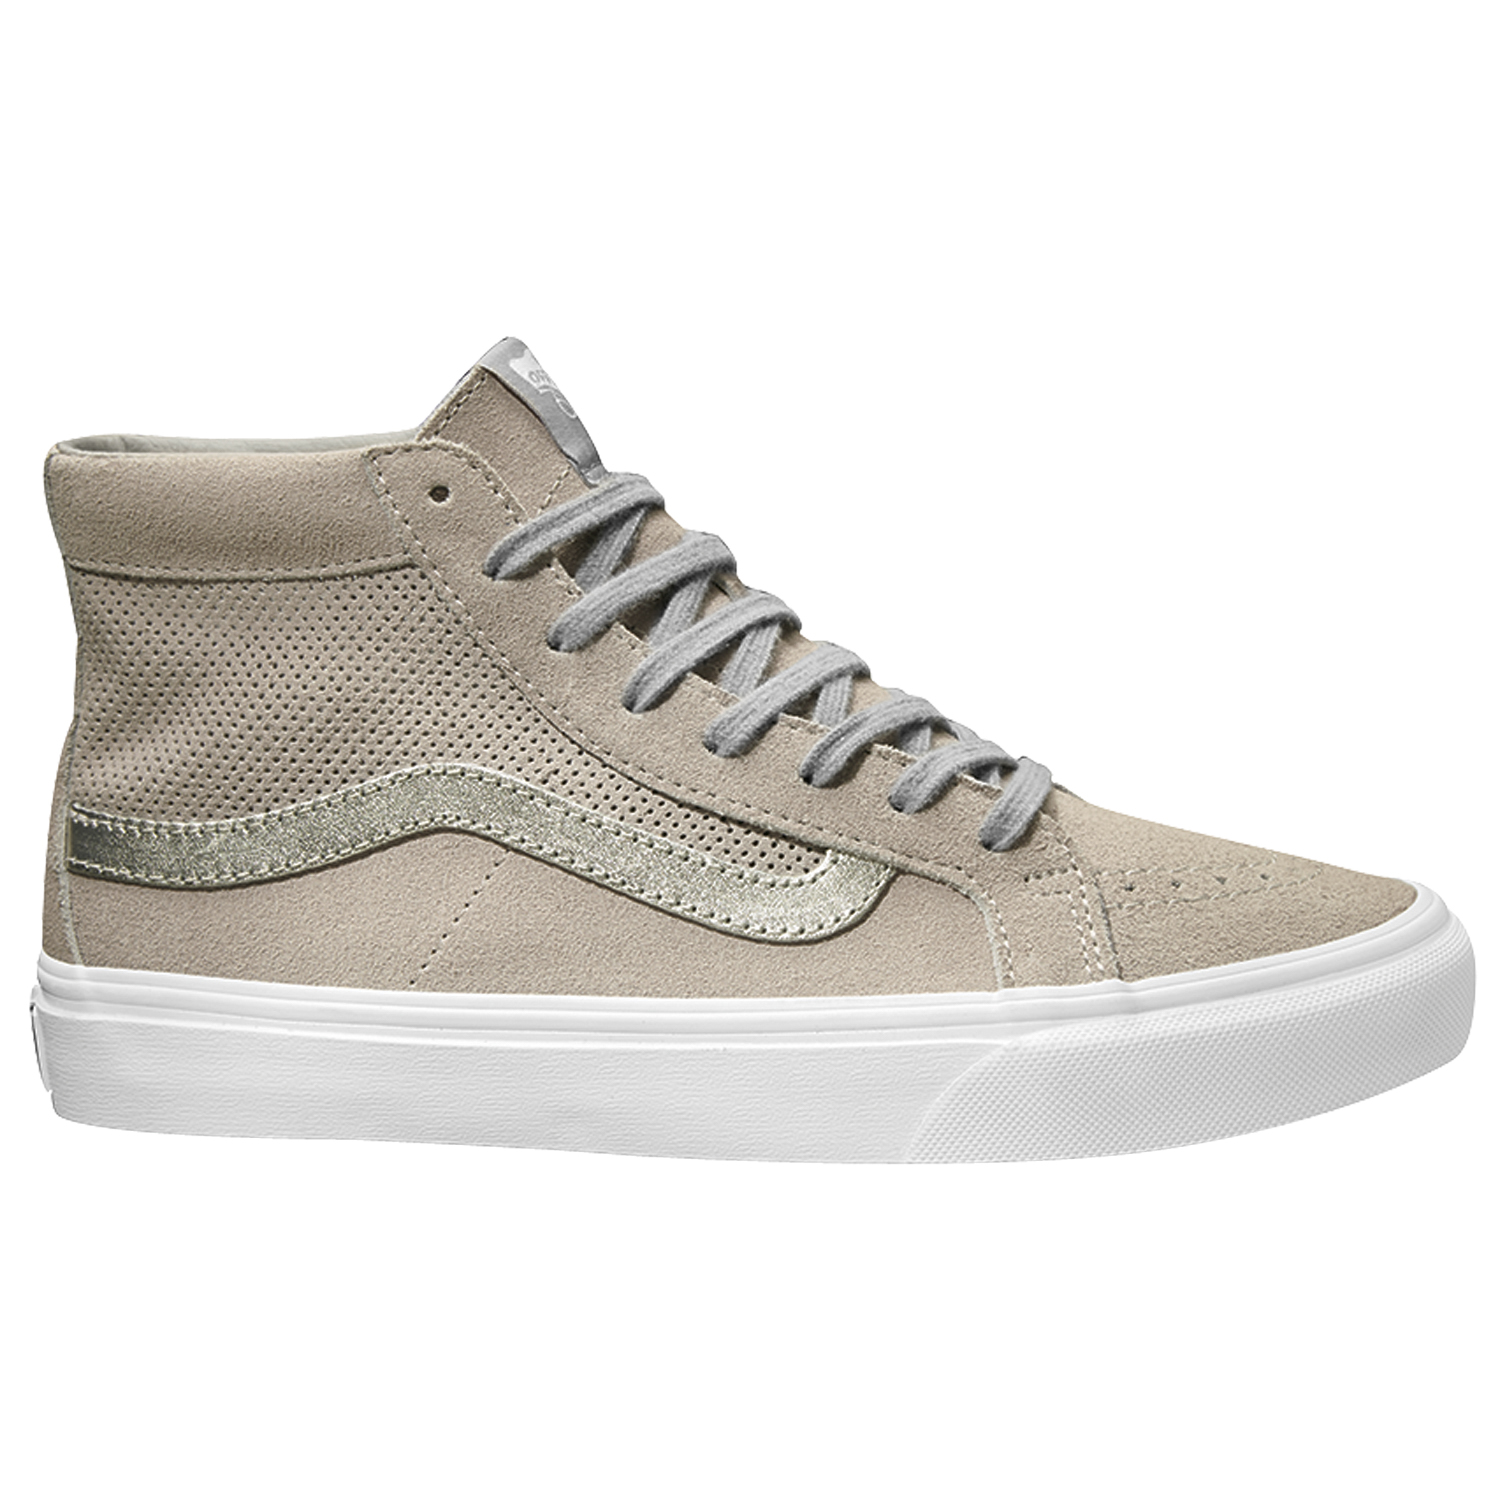 vans-sk8-hi-slim-cutout-perf-suede-silver-cloud-true-white-199-90